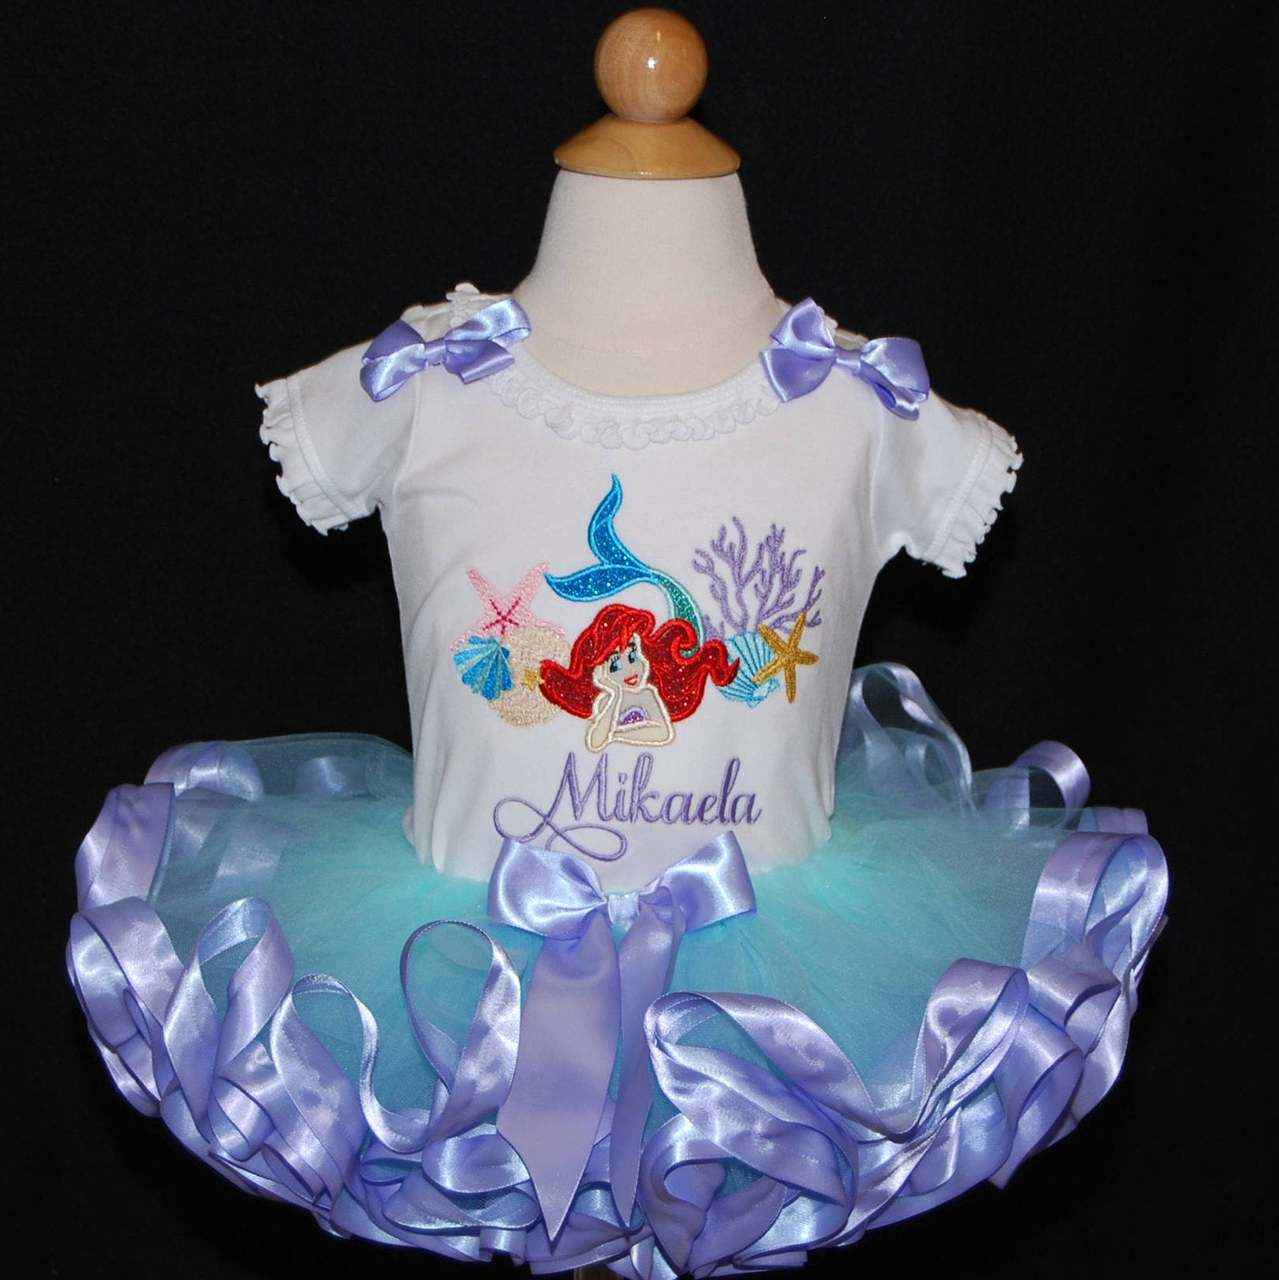 little mermaid birthday tutu outfit 1st birthday outfit